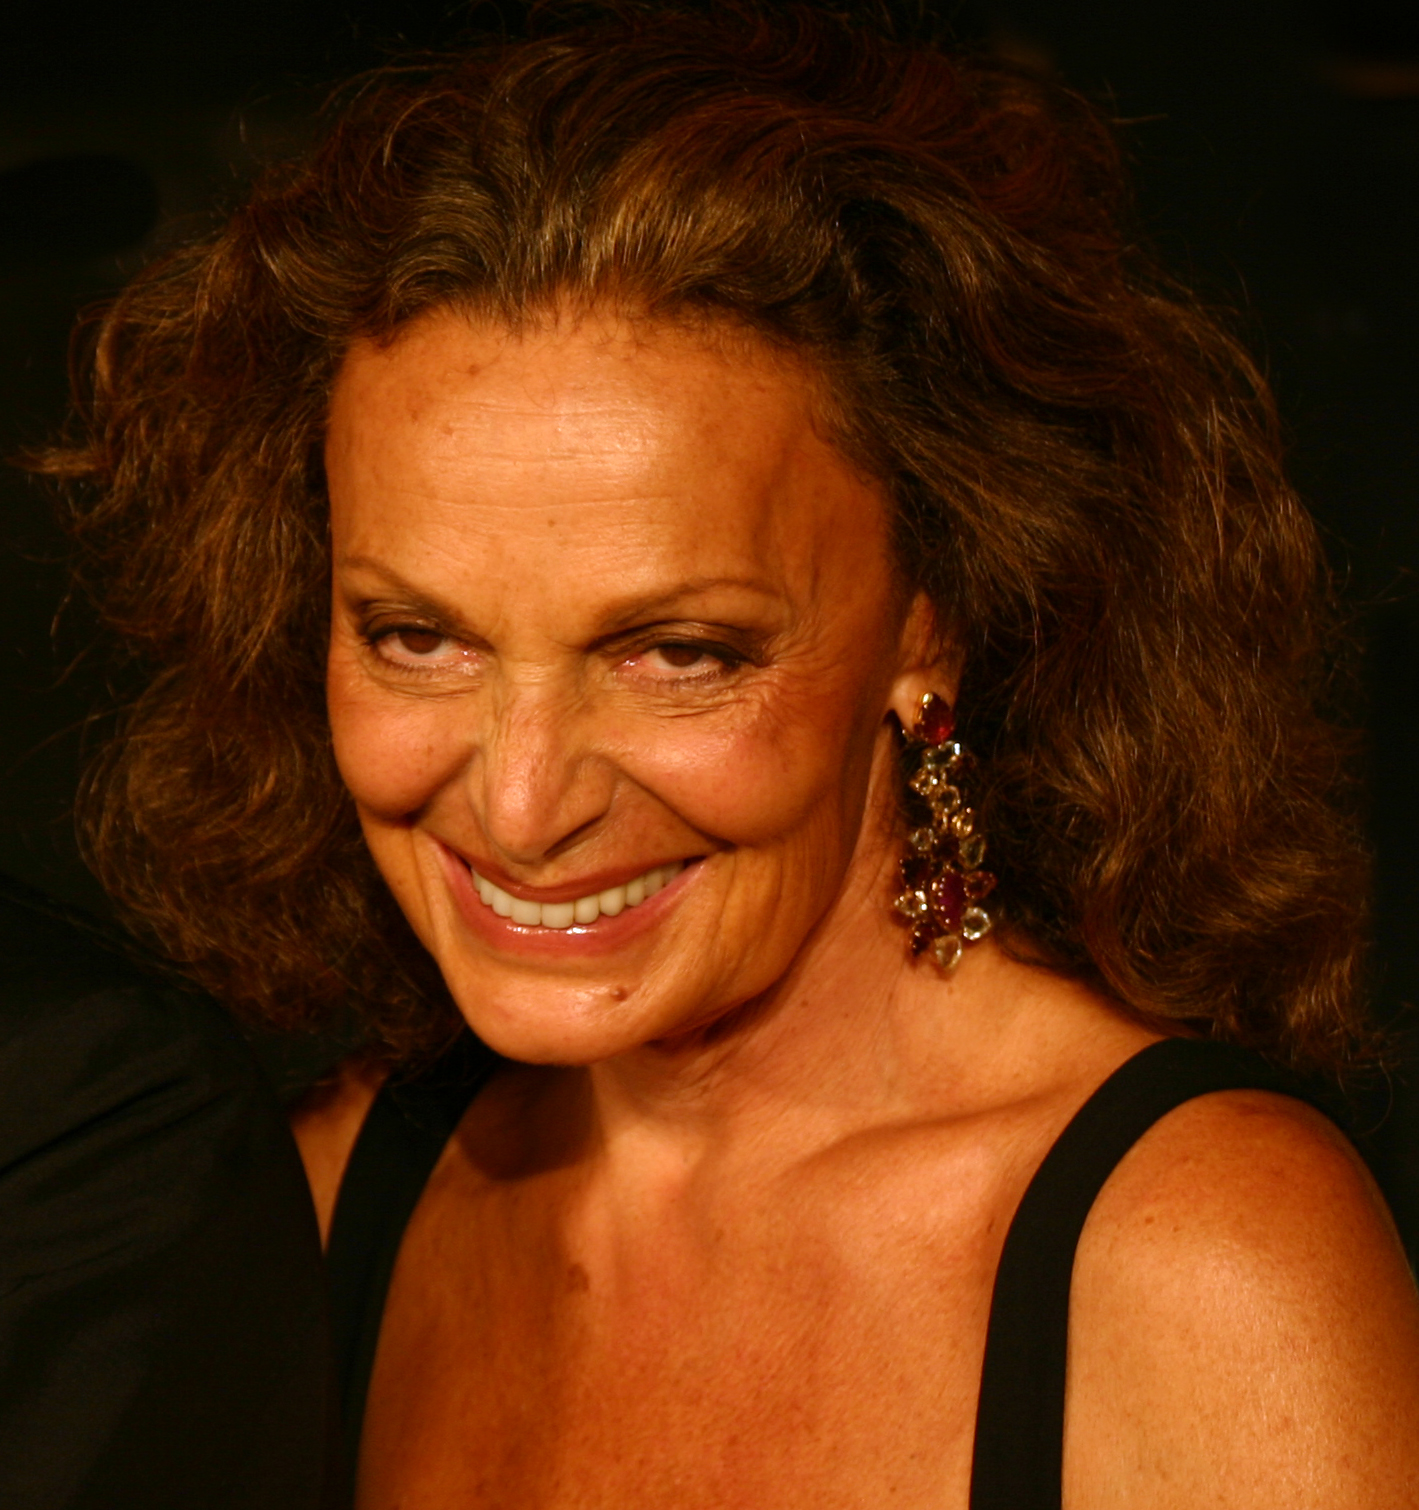 File:Diane von furstenberg fashion designer.jpg - Wikipedia, the free ...